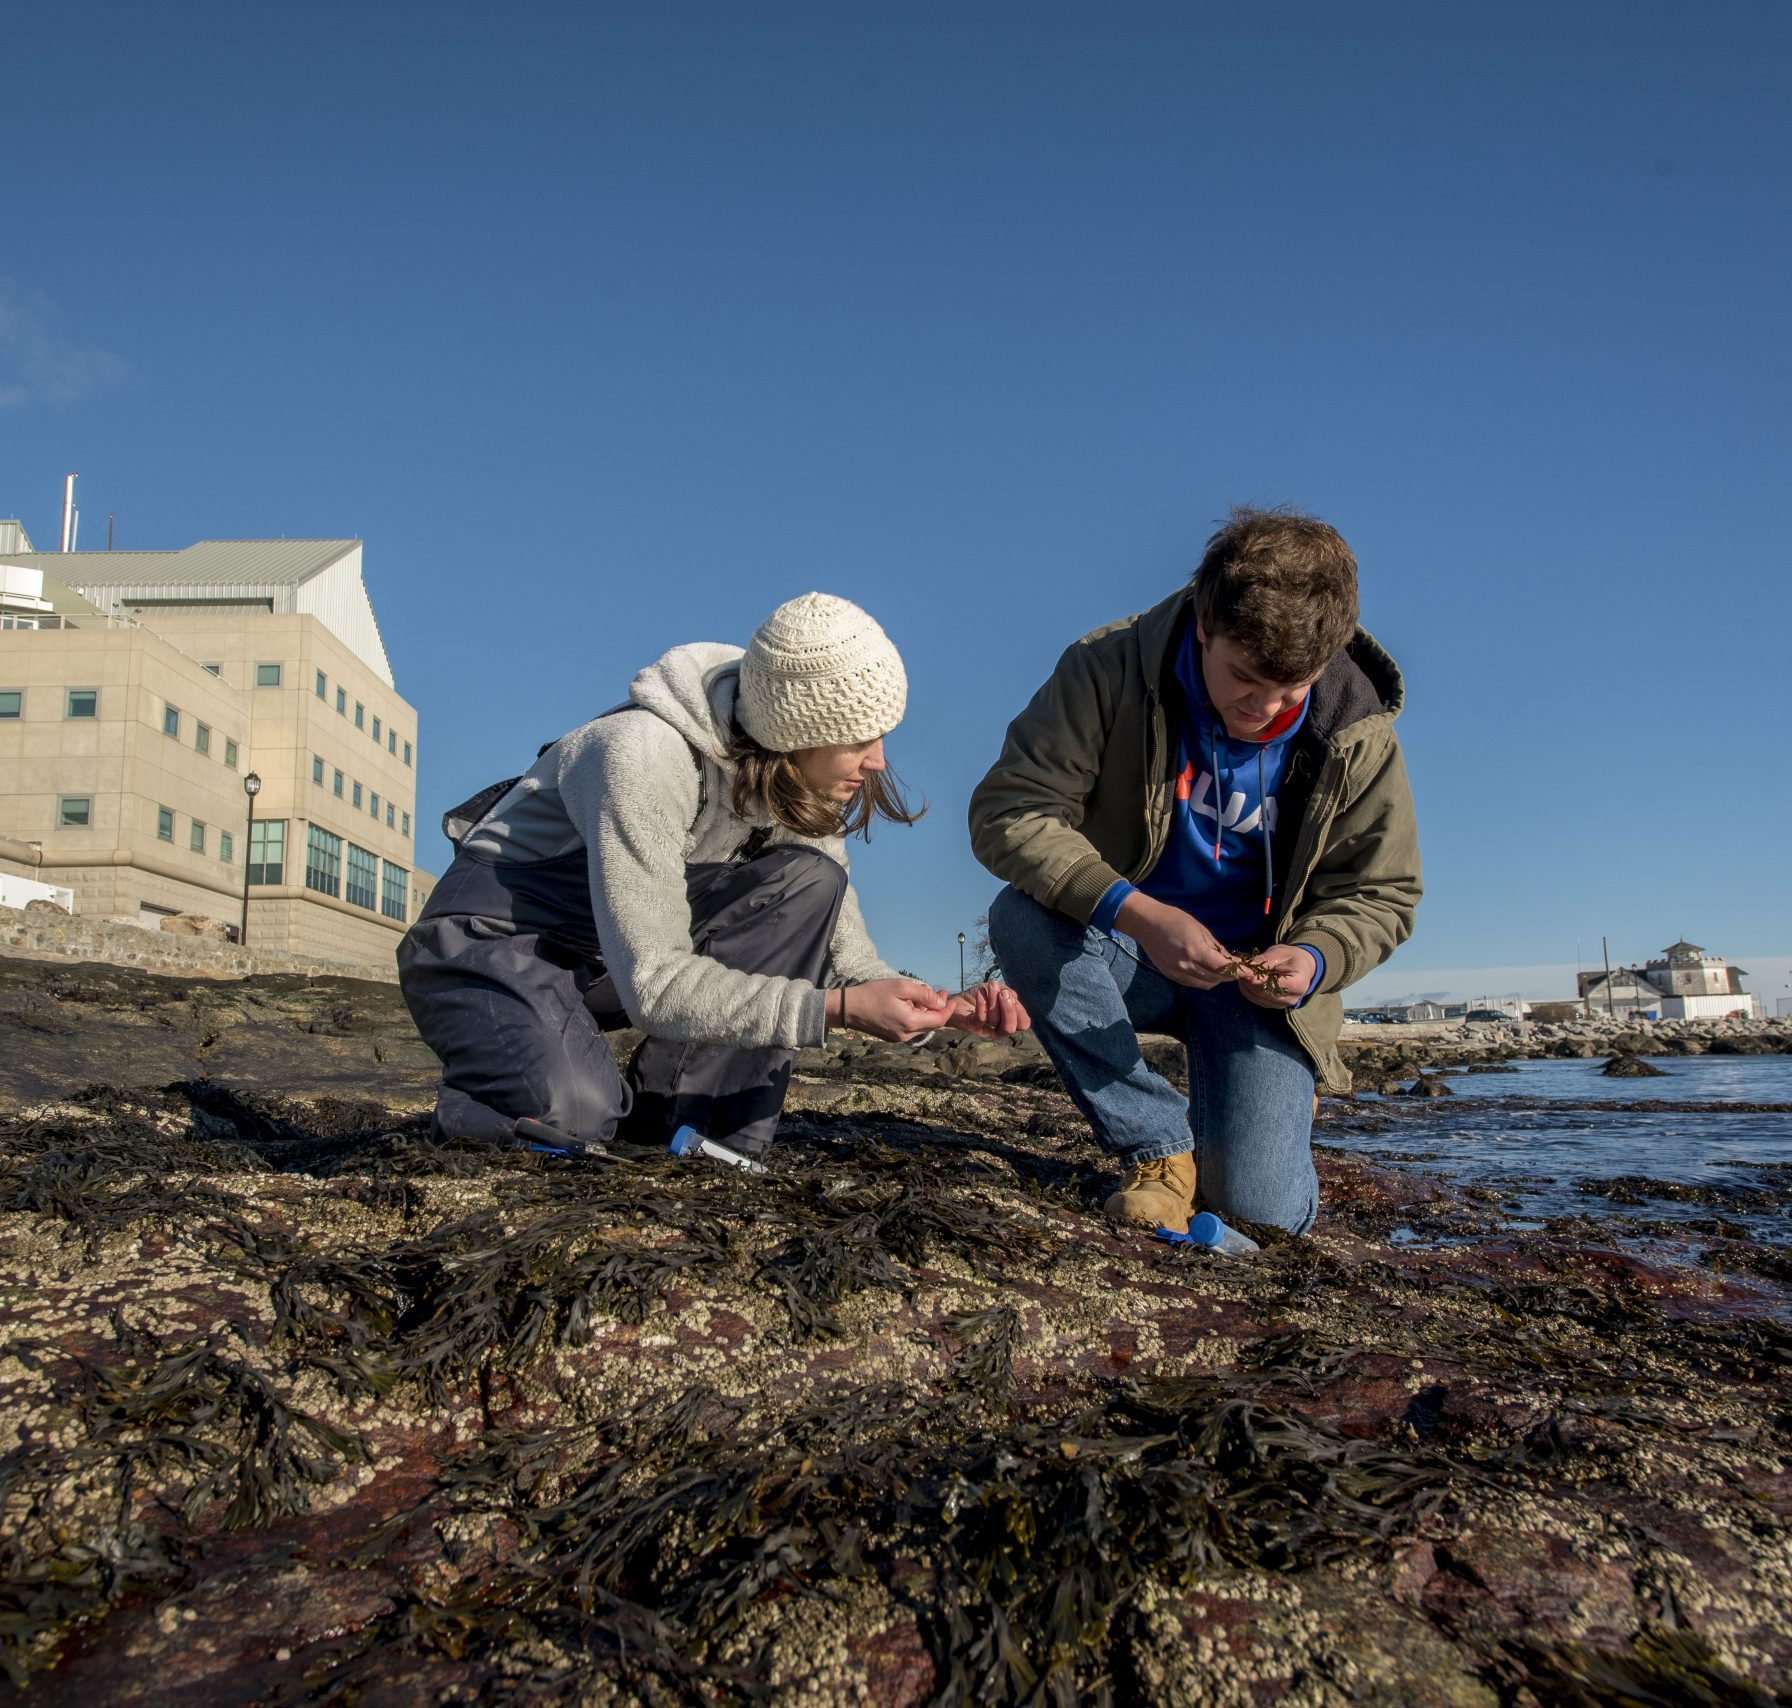 Chris Mills '18 Marine Science, and Assistant Professor Catherine Matassa working on a research project at UConn Avery Point on Nov. 29, 2018. (Sean Flynn/UConn Photo)